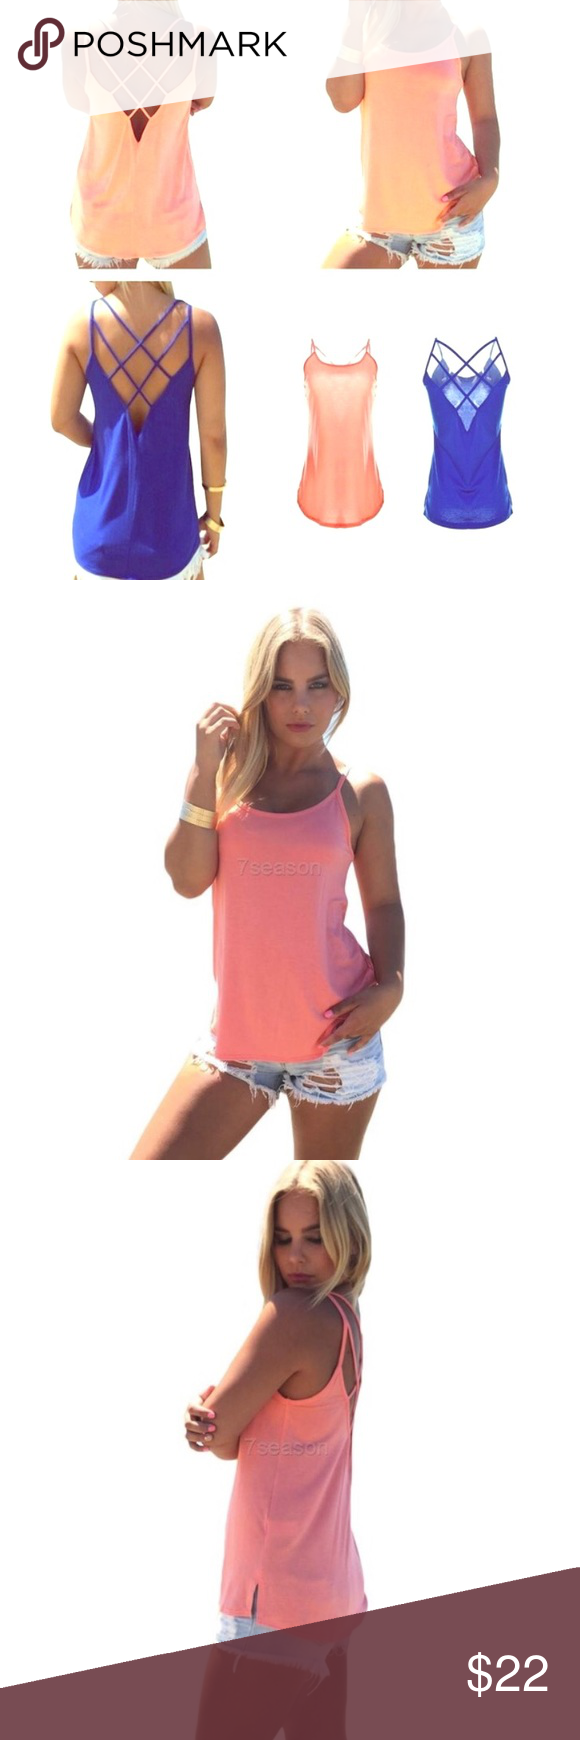 👕Royal Blue Summertime Tank👕 You won't be able to stop grabbing for this perfect summertime choice once you've experienced utter comfort, chic style & the breeze that moves through this flowing blouse w/ ease! Need I say more?! Lol! This best seller features a looser-fit at the midsection & brings it back in twds the bust, spaghetti straps, O-Neck neckline & an open upper back w/ thin straps of material crisscrossing across back, cotton blend, NWT, available in peach Sz M also, pls see…